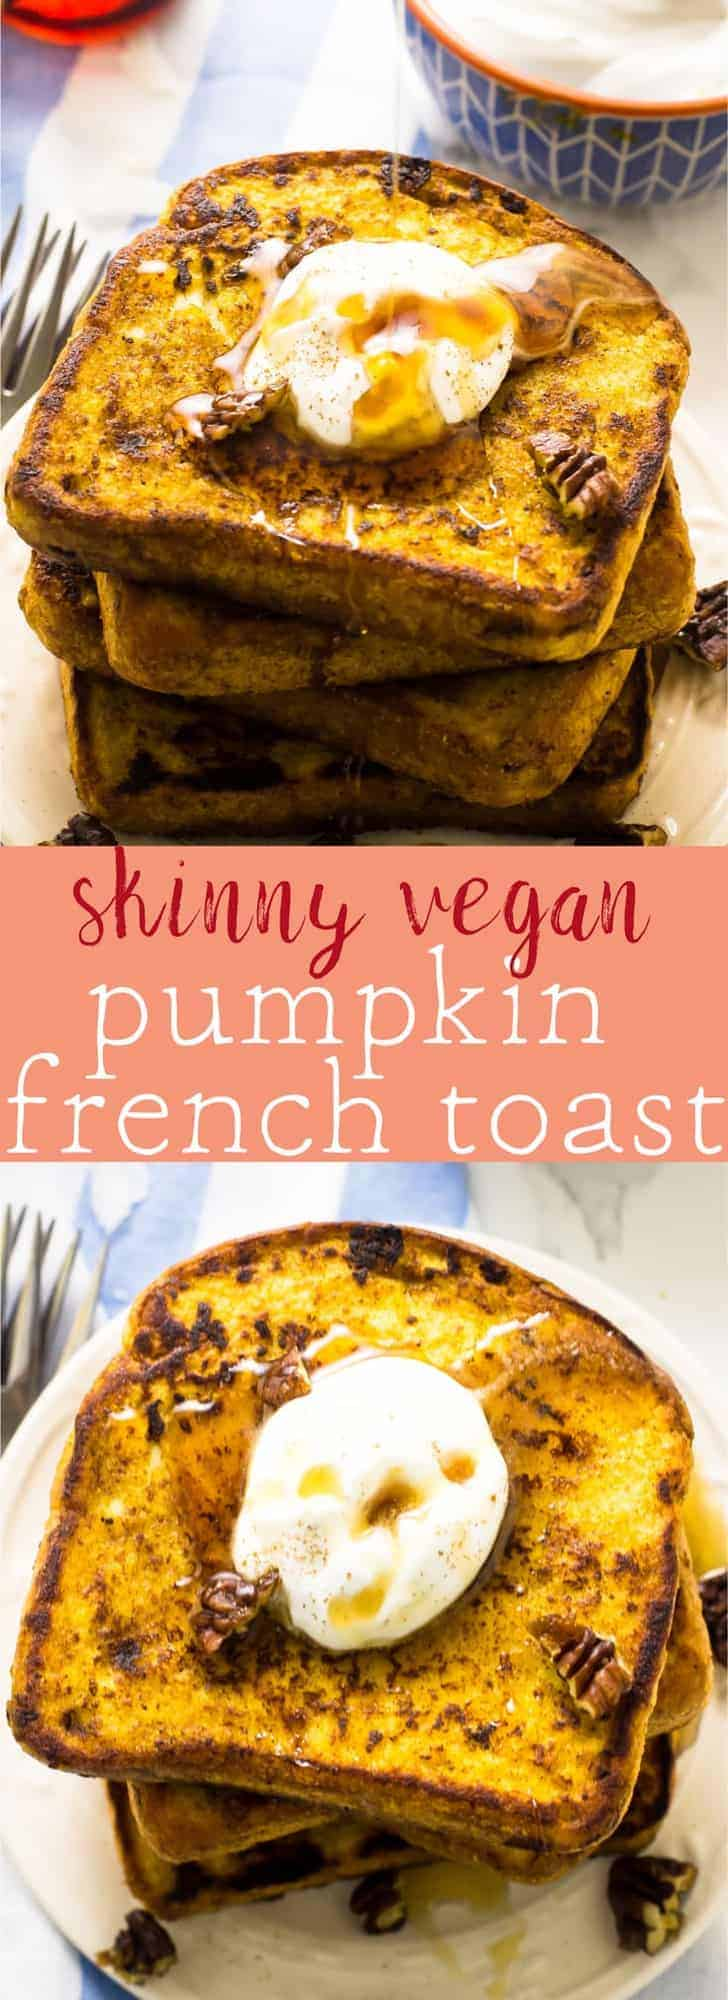 This Vegan Pumpkin French Toast is deliciously crispy on the outside, soft on the inside and done in just 30 minutes! It's healthy, nutritious and loaded with pumpkin flavour! via https://jessicainthekitchen.com